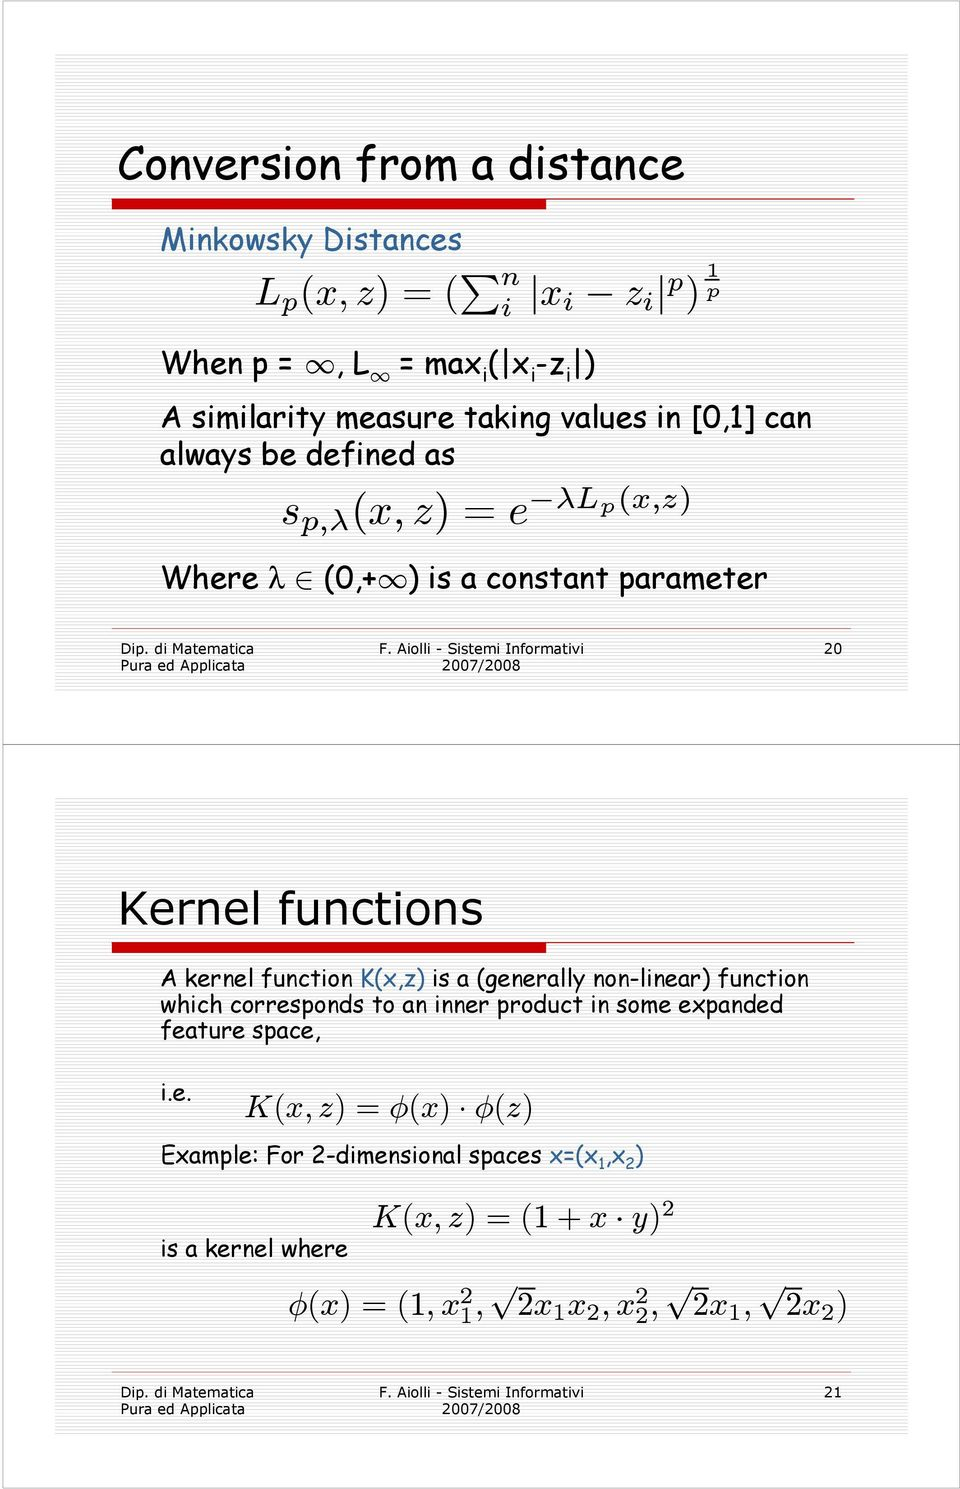 kernel function K(x,z) is a (generally non-linear) function which corresponds to an inner product in some expanded feature space, i.e.